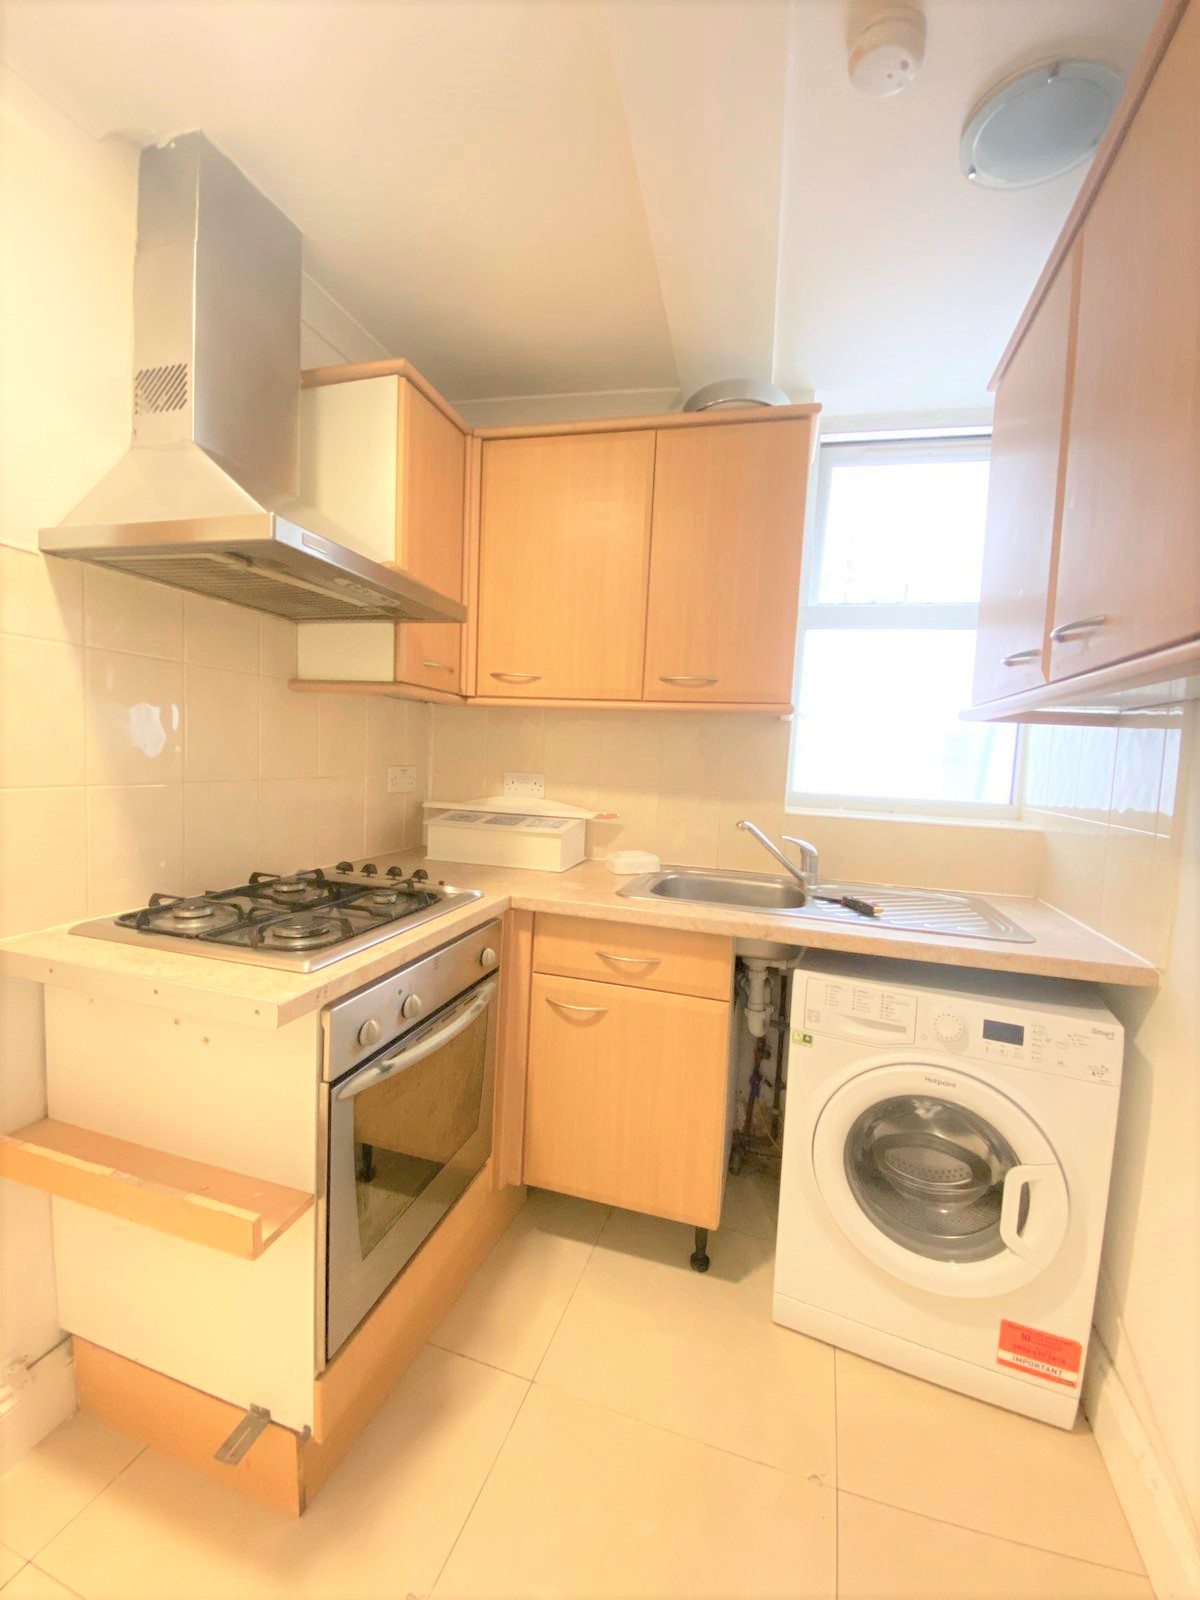 3 bed flat to rent in North End Road, West Kensington, London  - Property Image 5